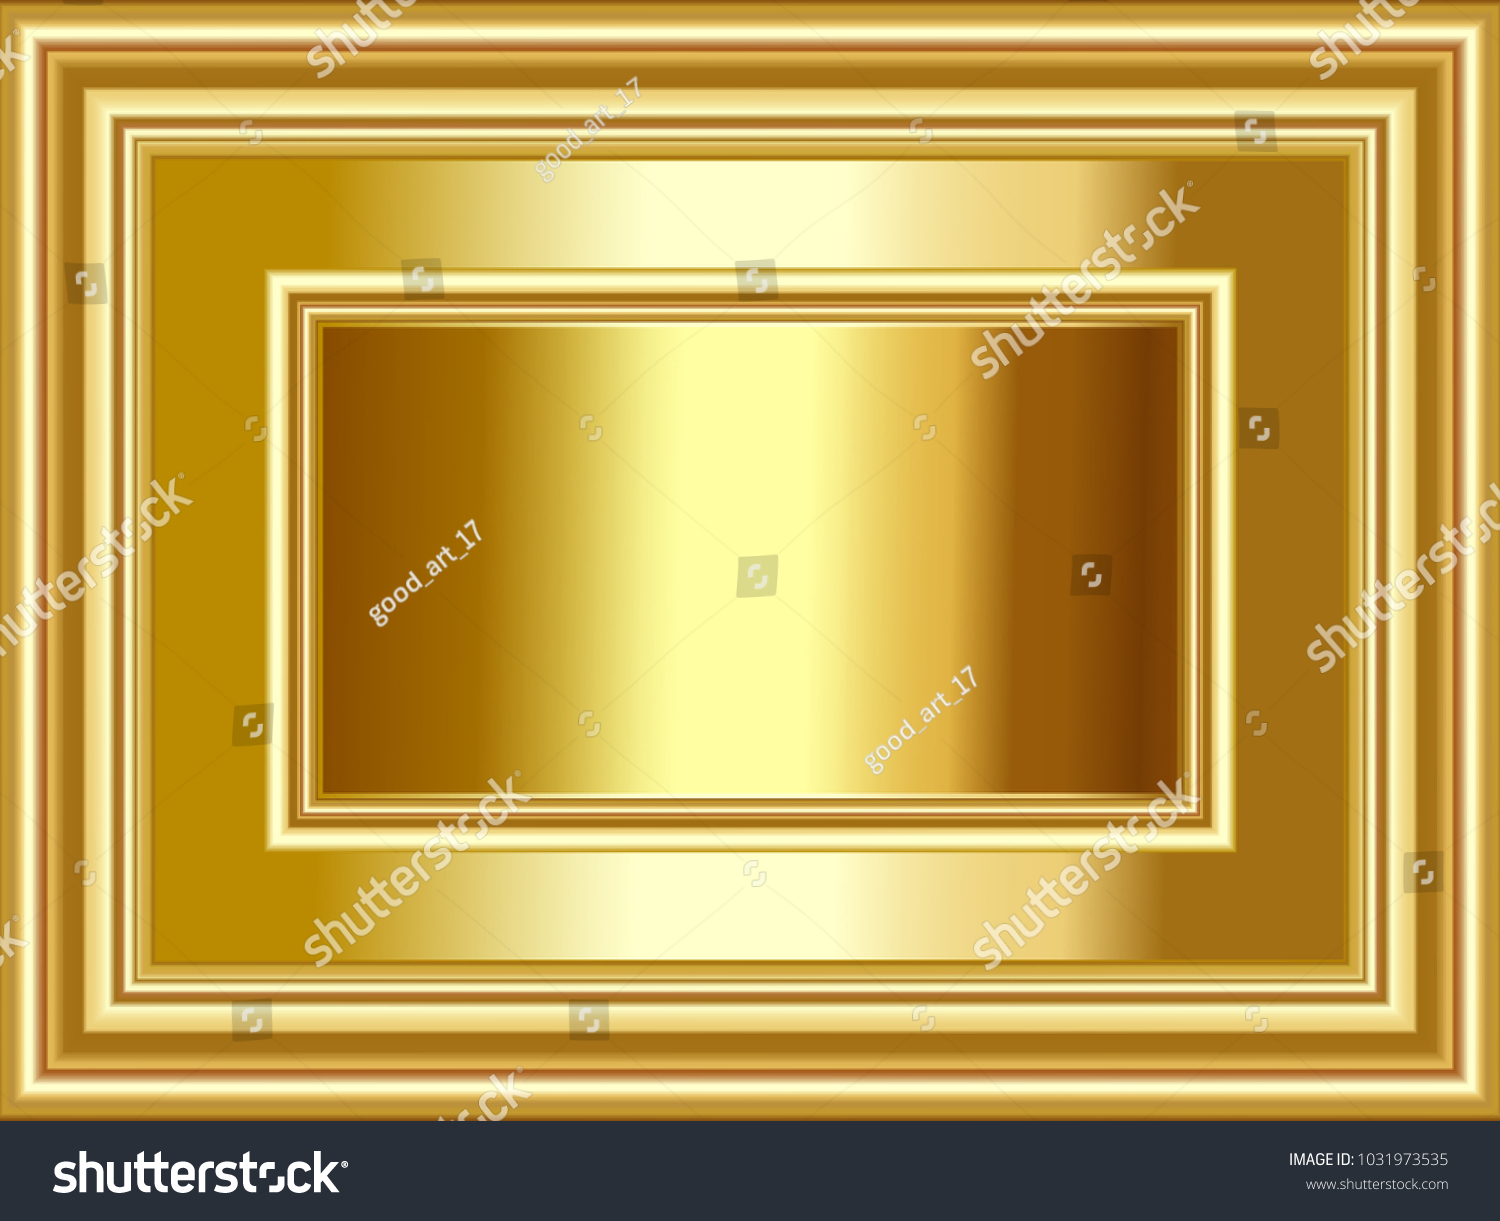 Luxury Gold Background Gold Frame Shining Stock Vector 1031973535 ...